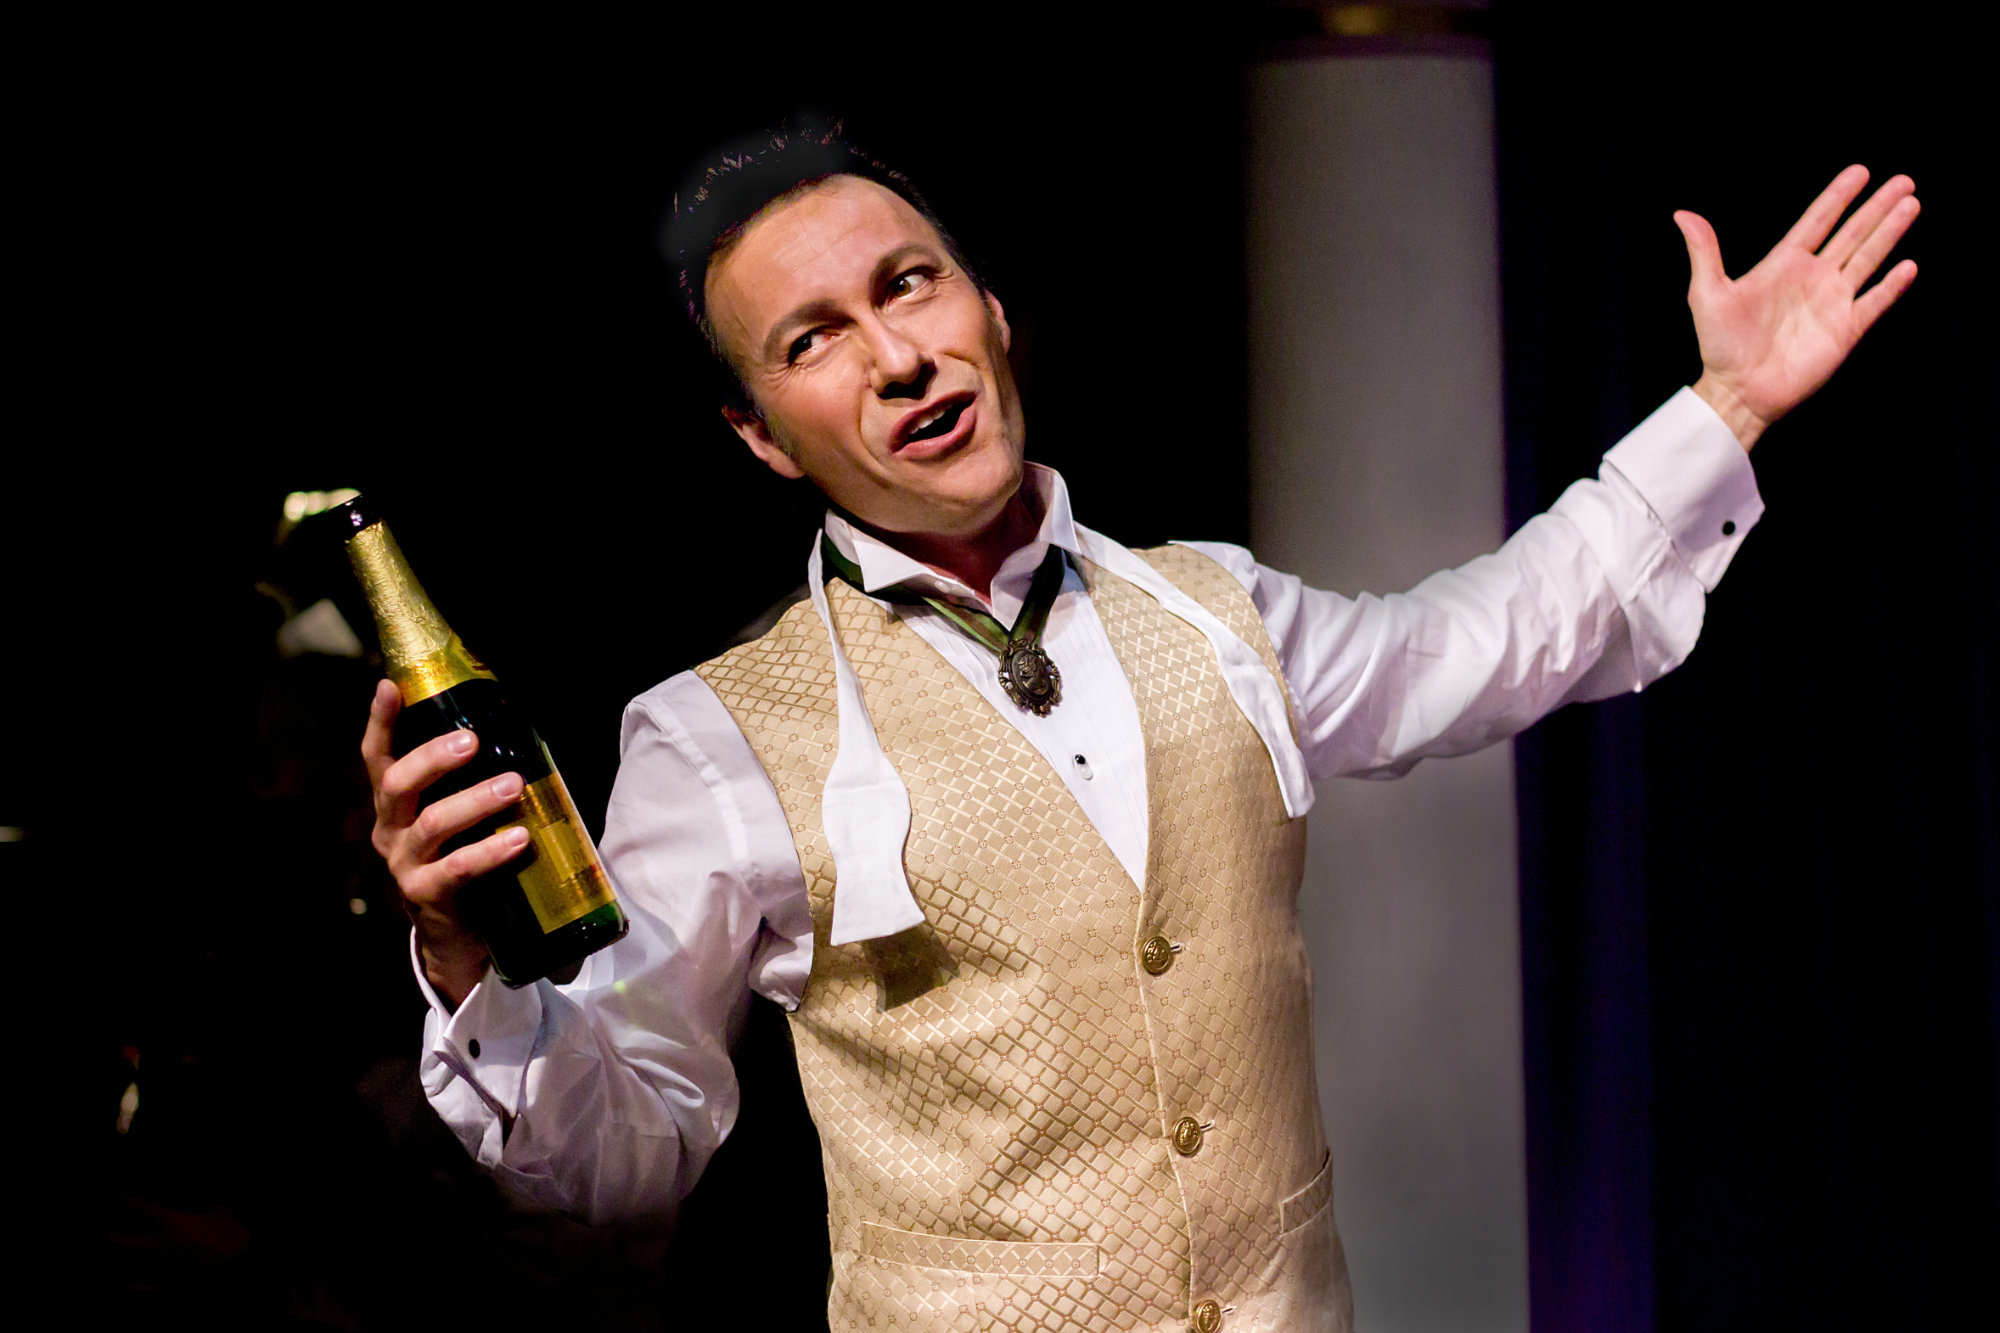 Carlos as Danilo in The Merry Widow